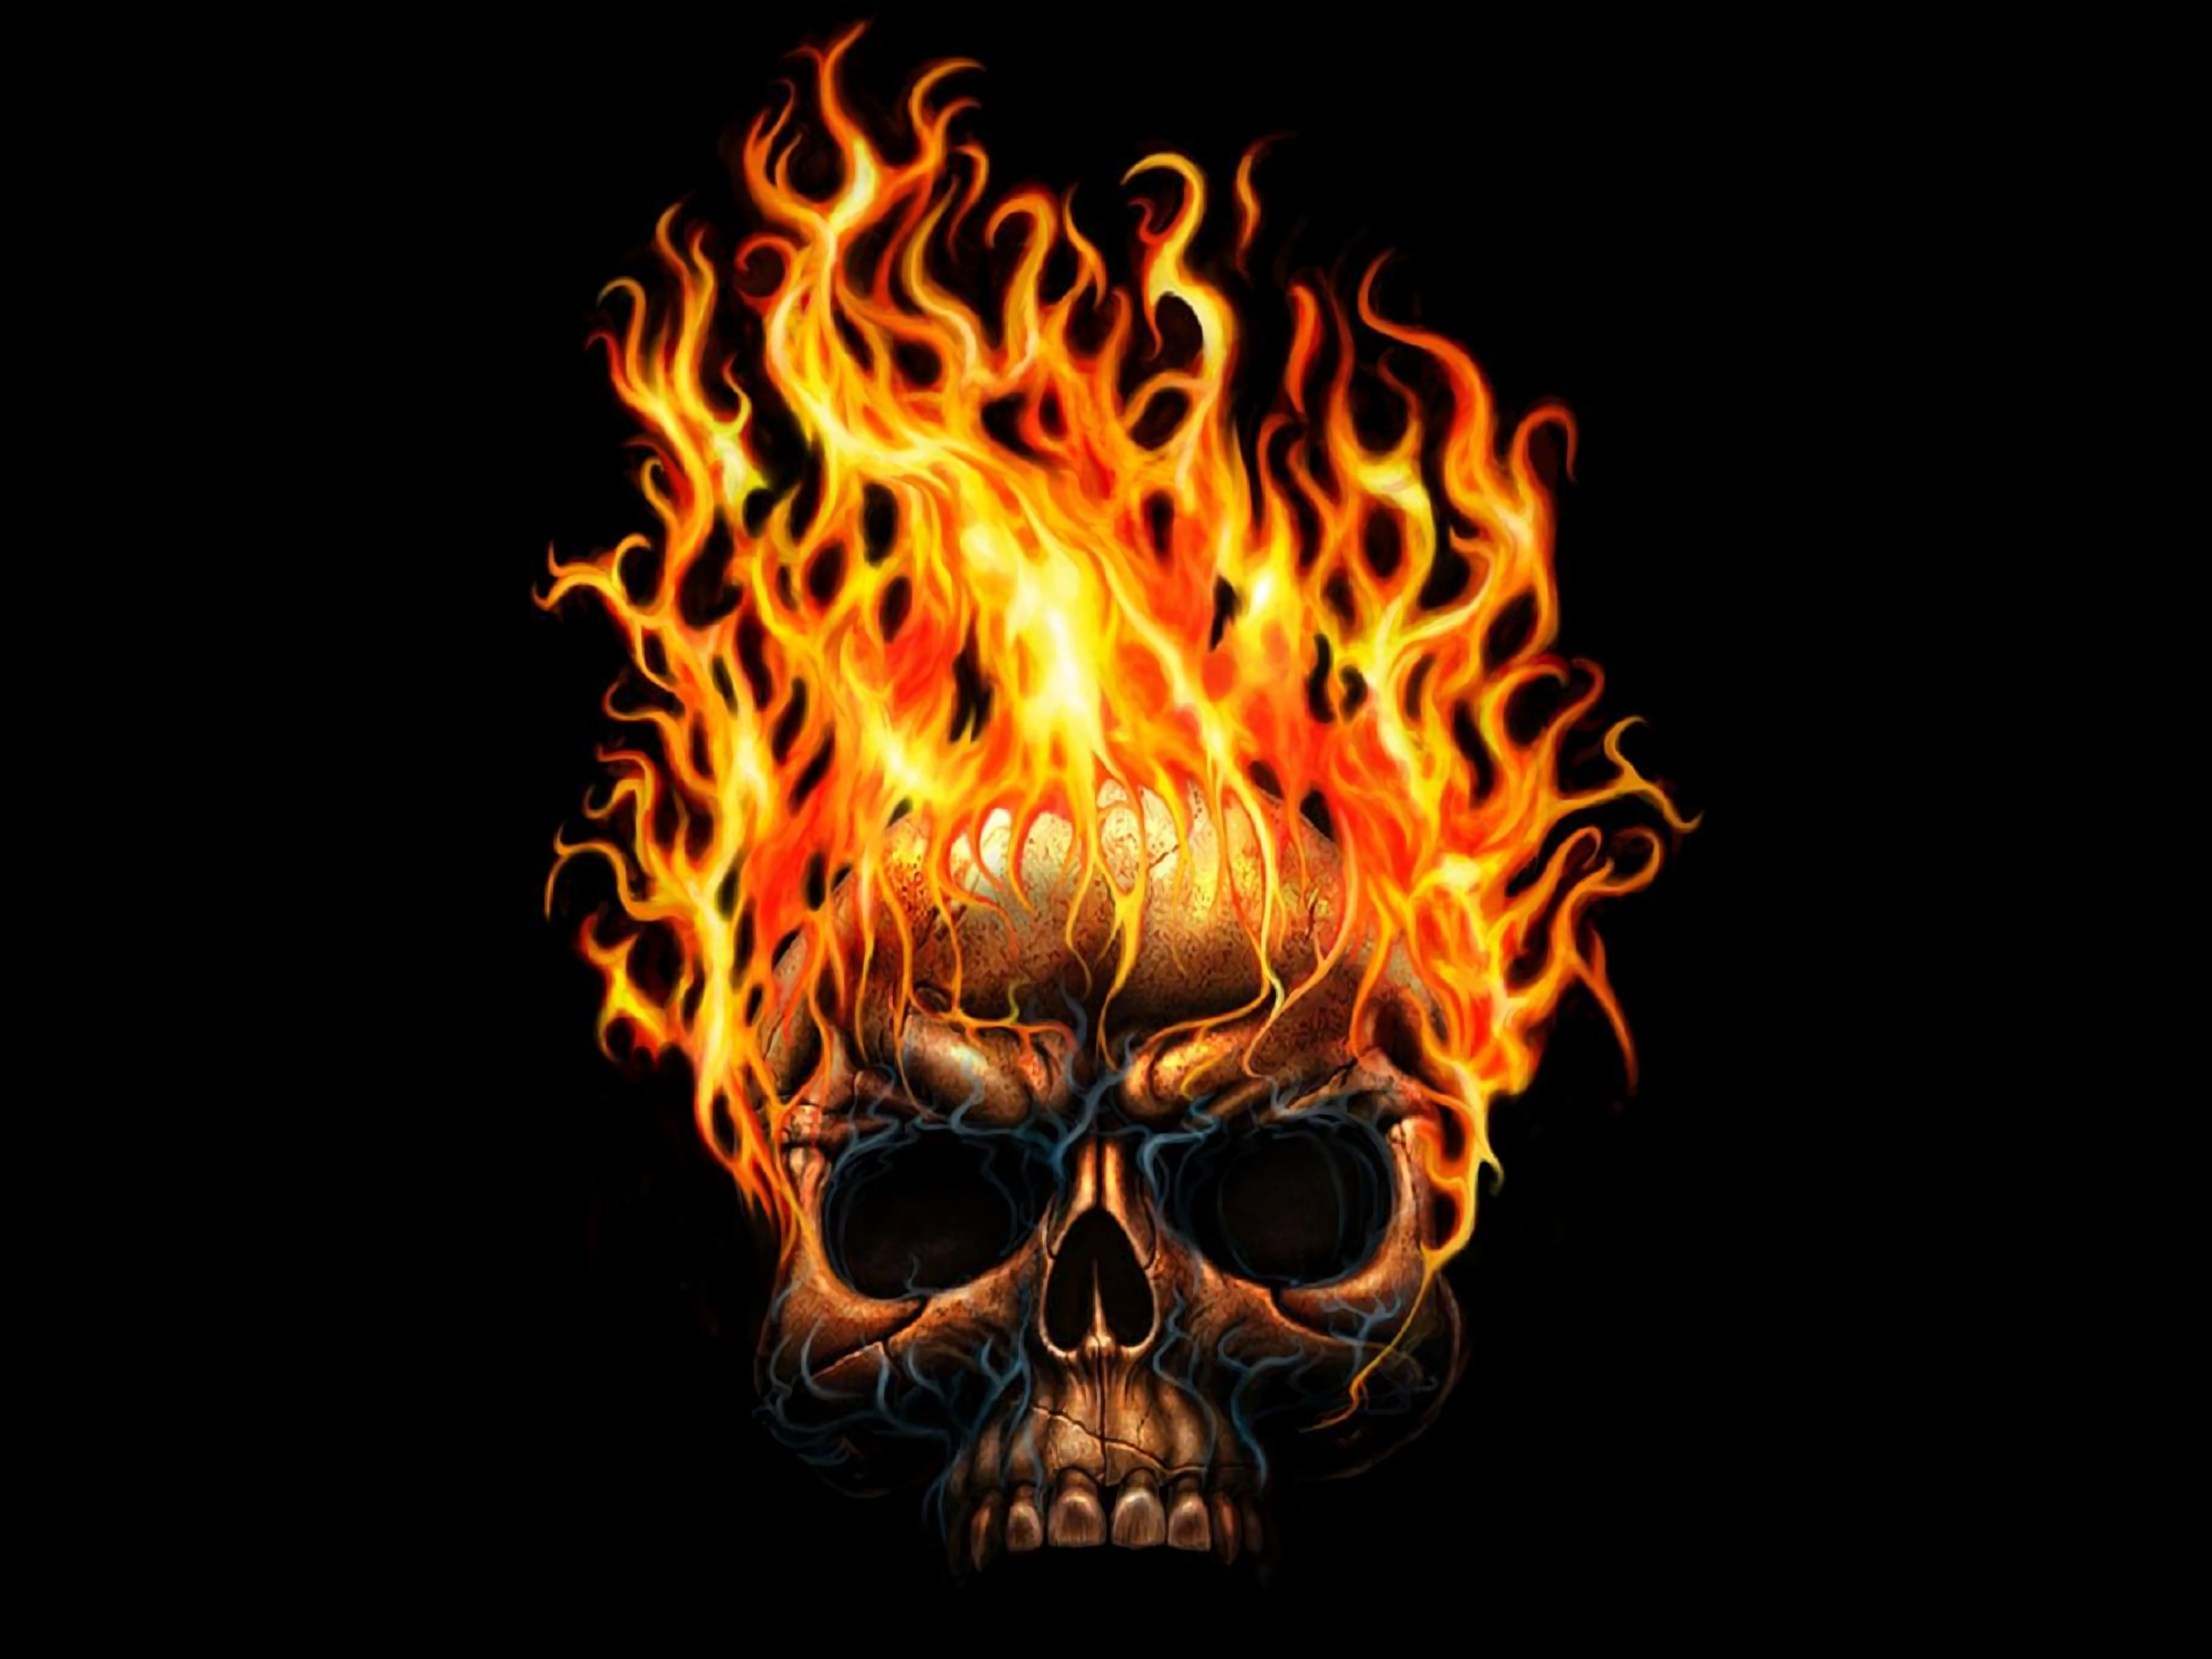 743 skull hd wallpapers | background images - wallpaper abyss